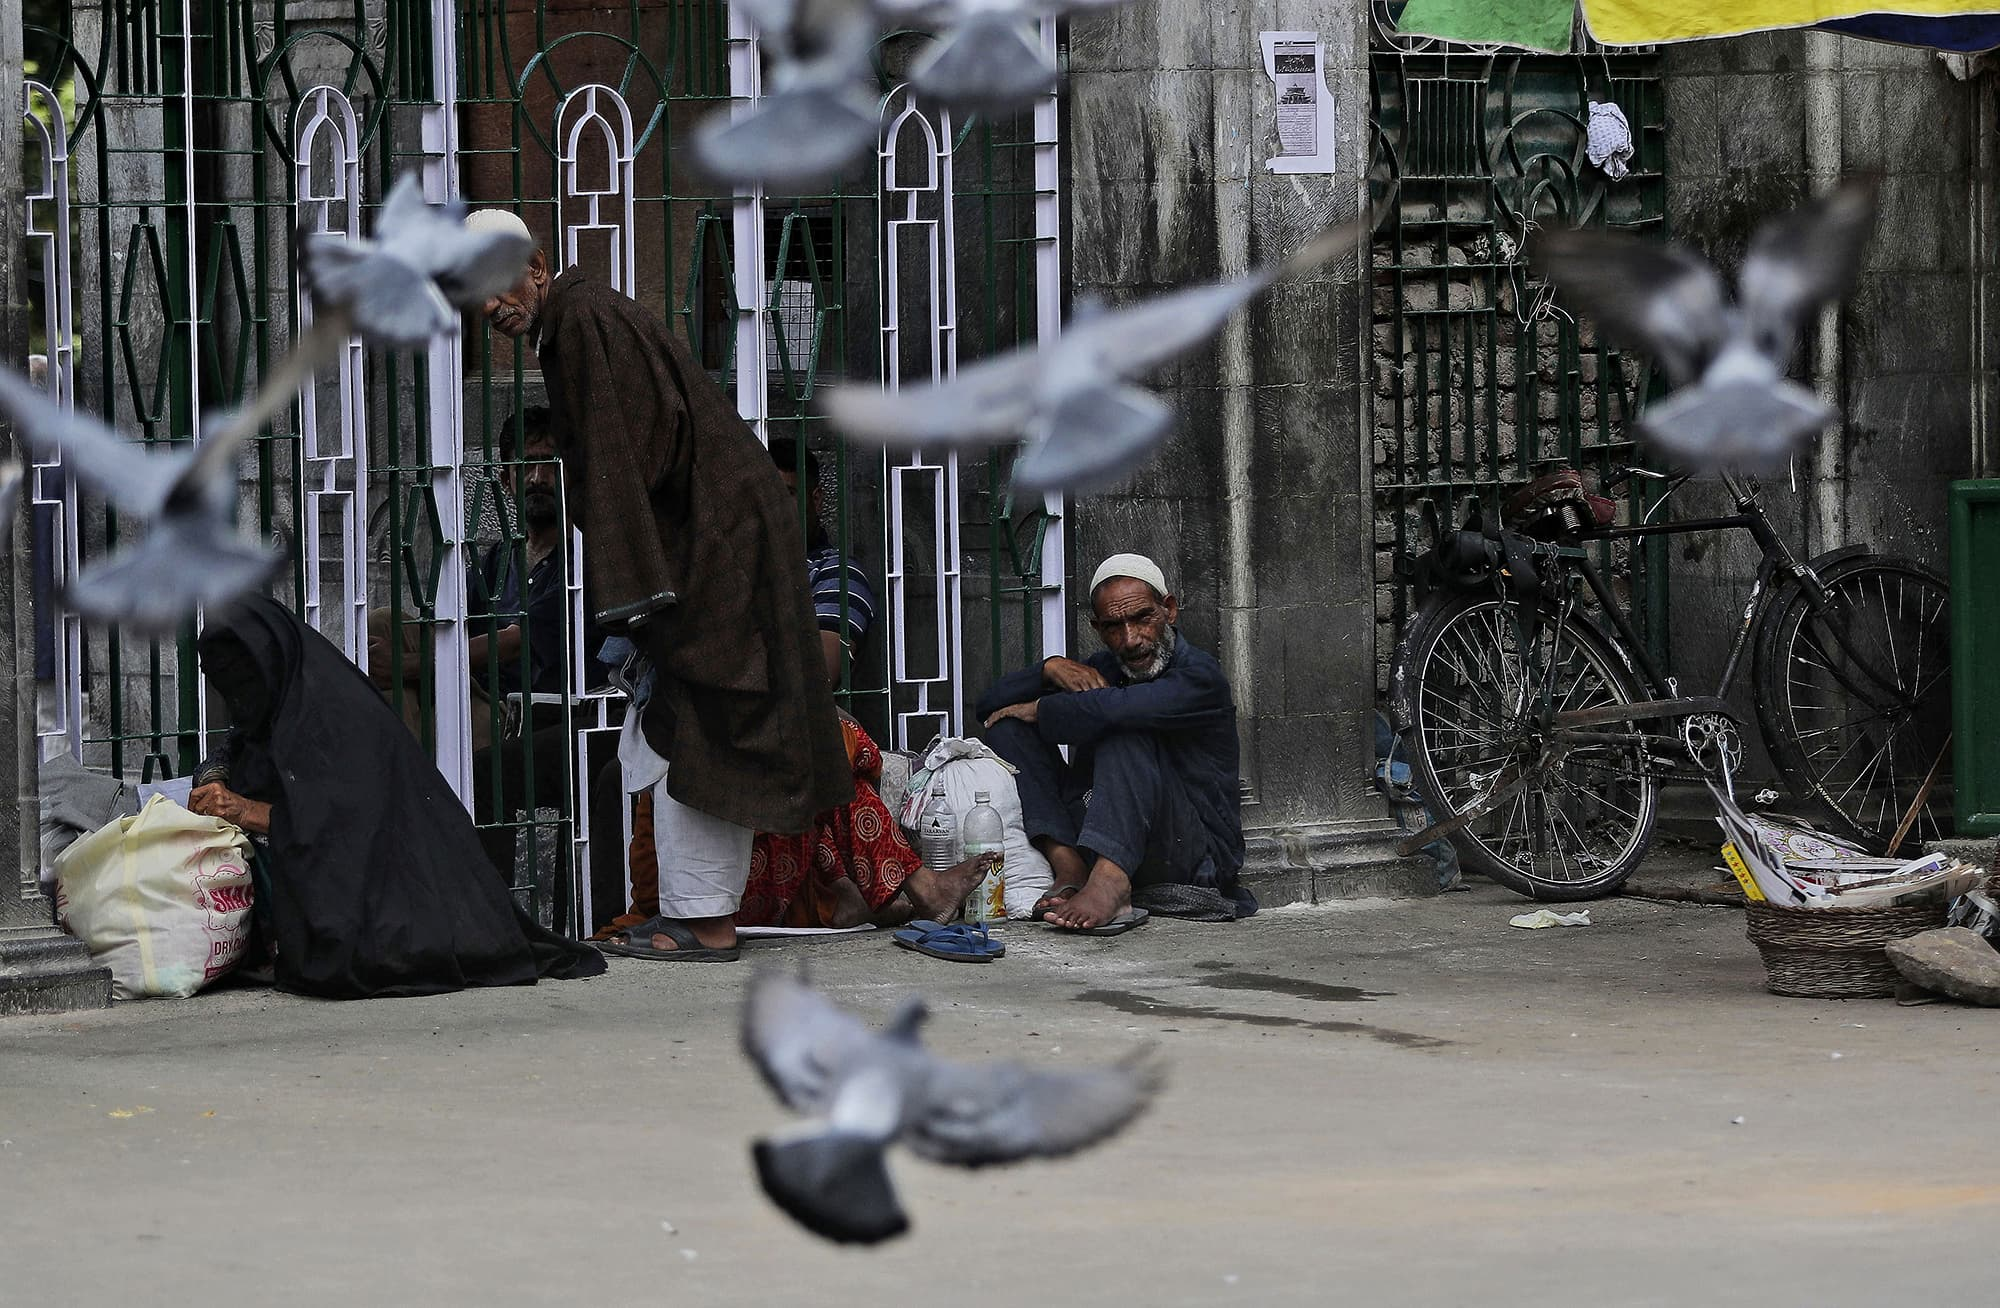 People sit outside a Muslim shrine on Friday as Srinagar remains under curfew. ─ AP